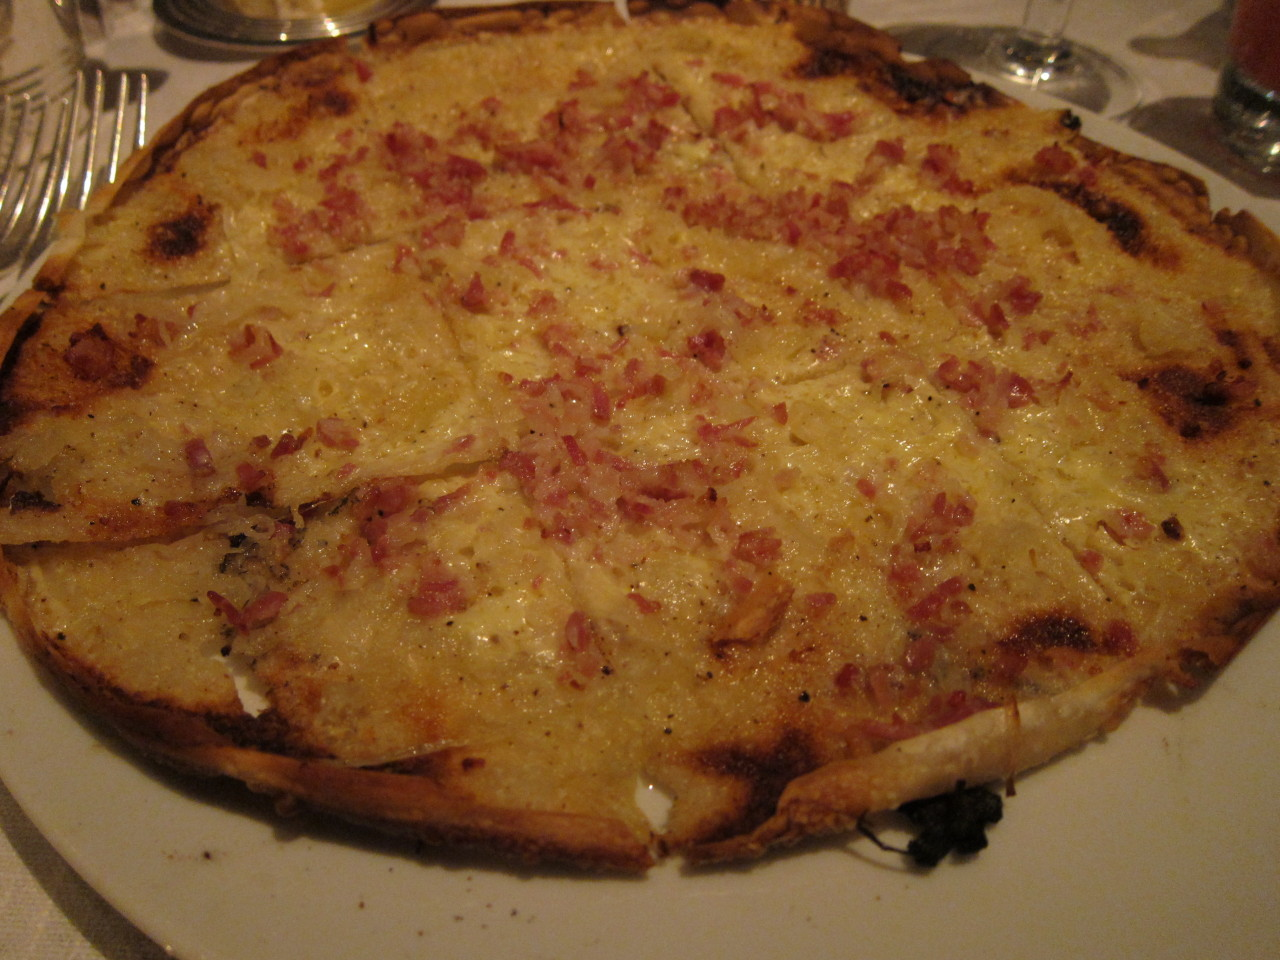 Tarte Flambee from The Delaunay in London - yes quite similar to a pizza